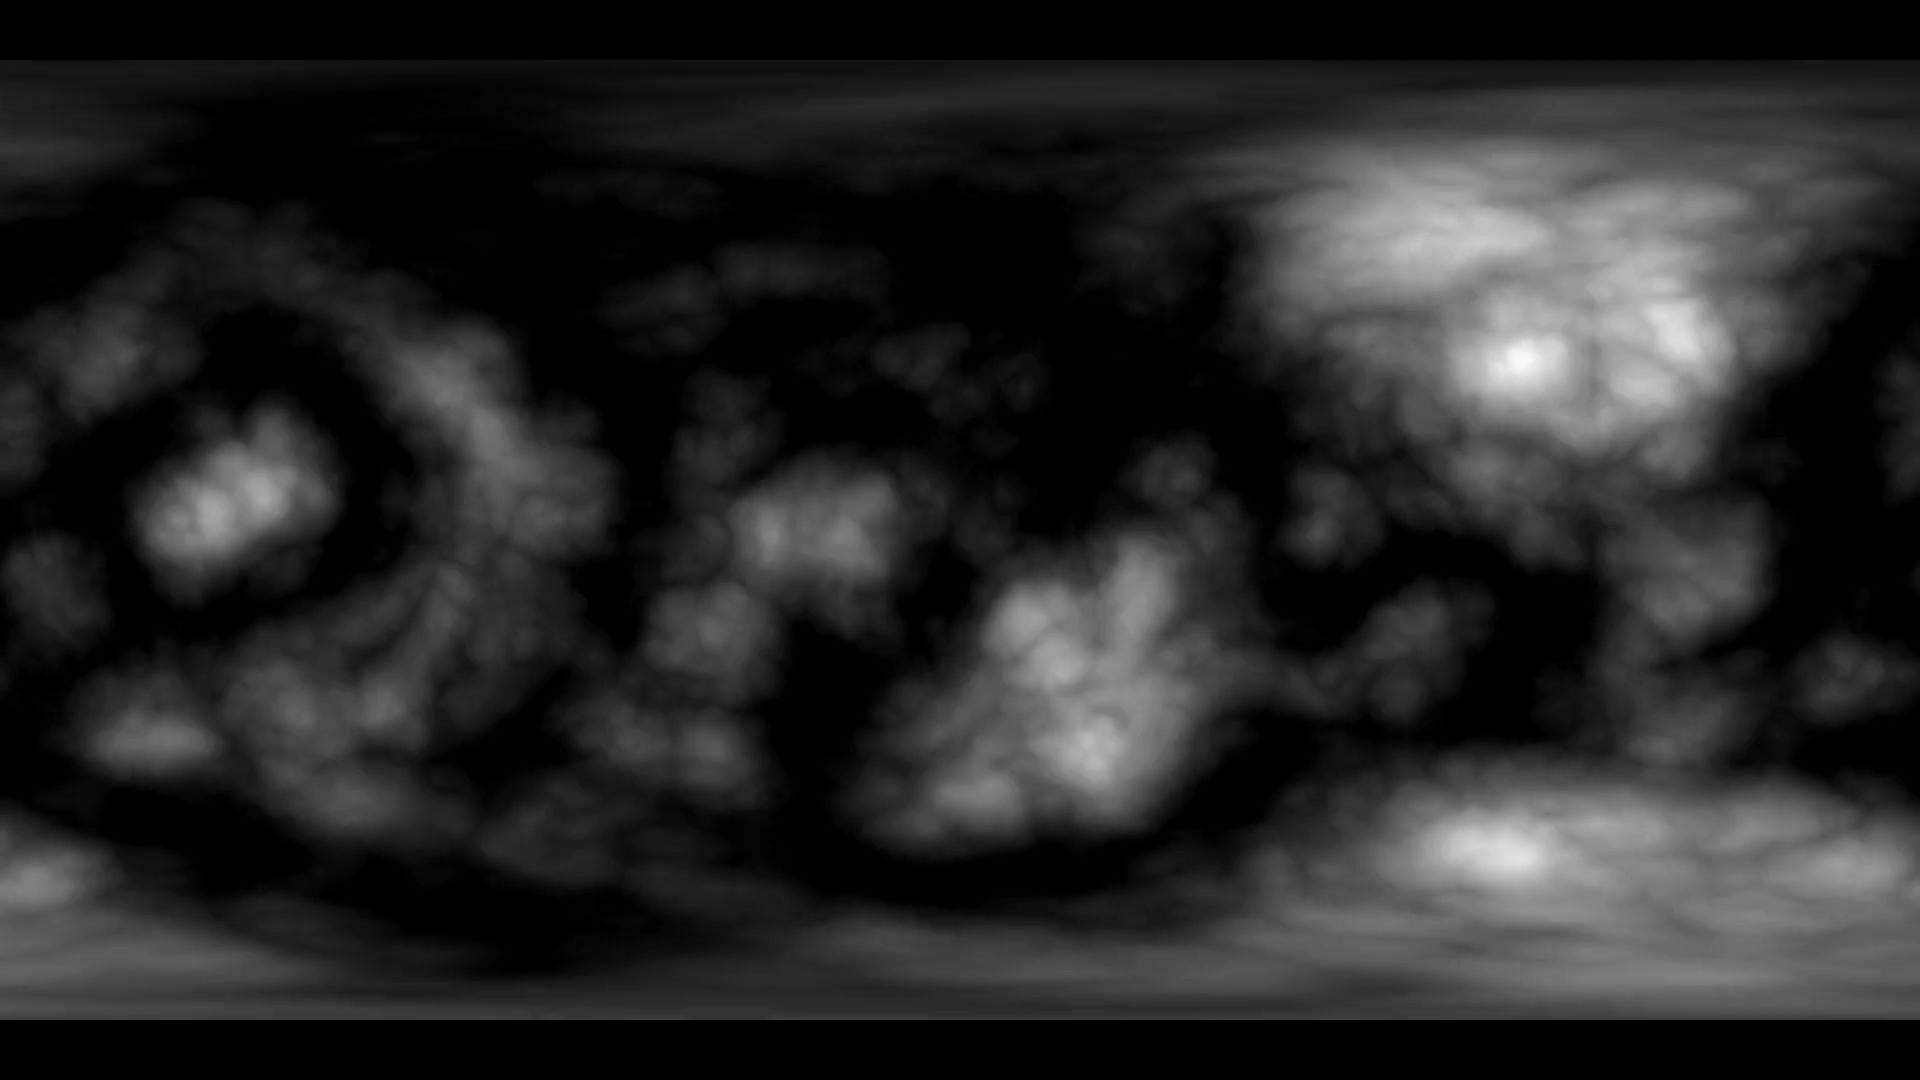 vr 360 Background color smoke noise. virtual reality